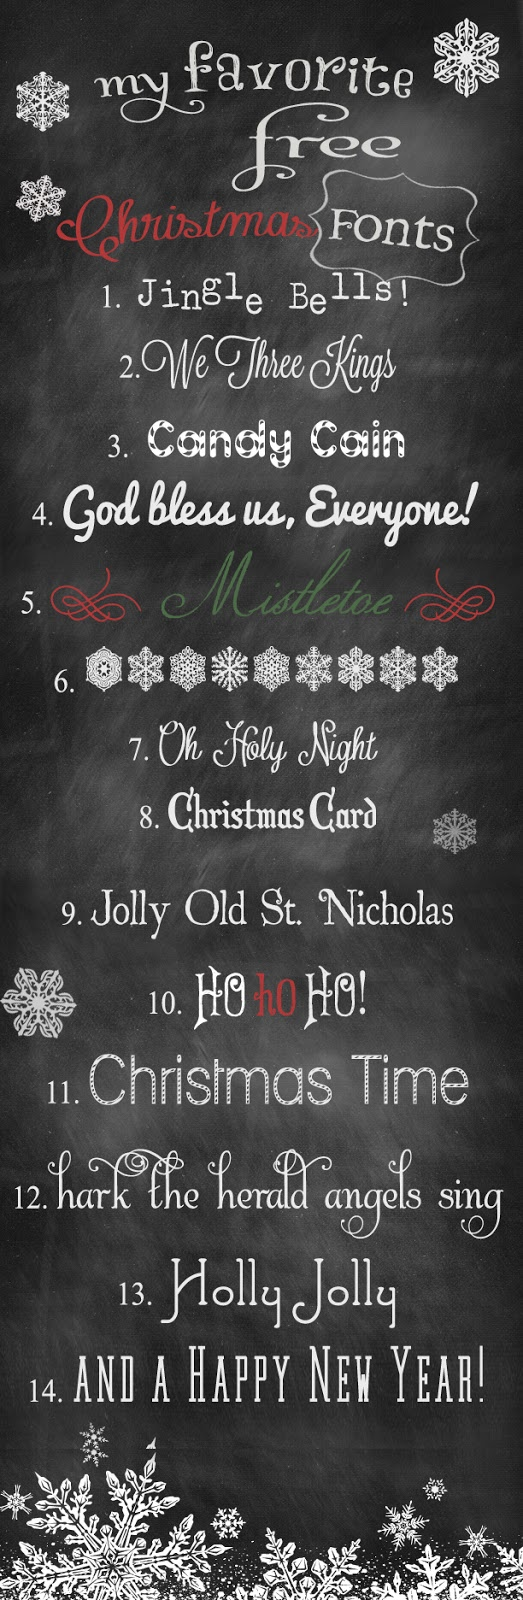 Free-christmas-fonts